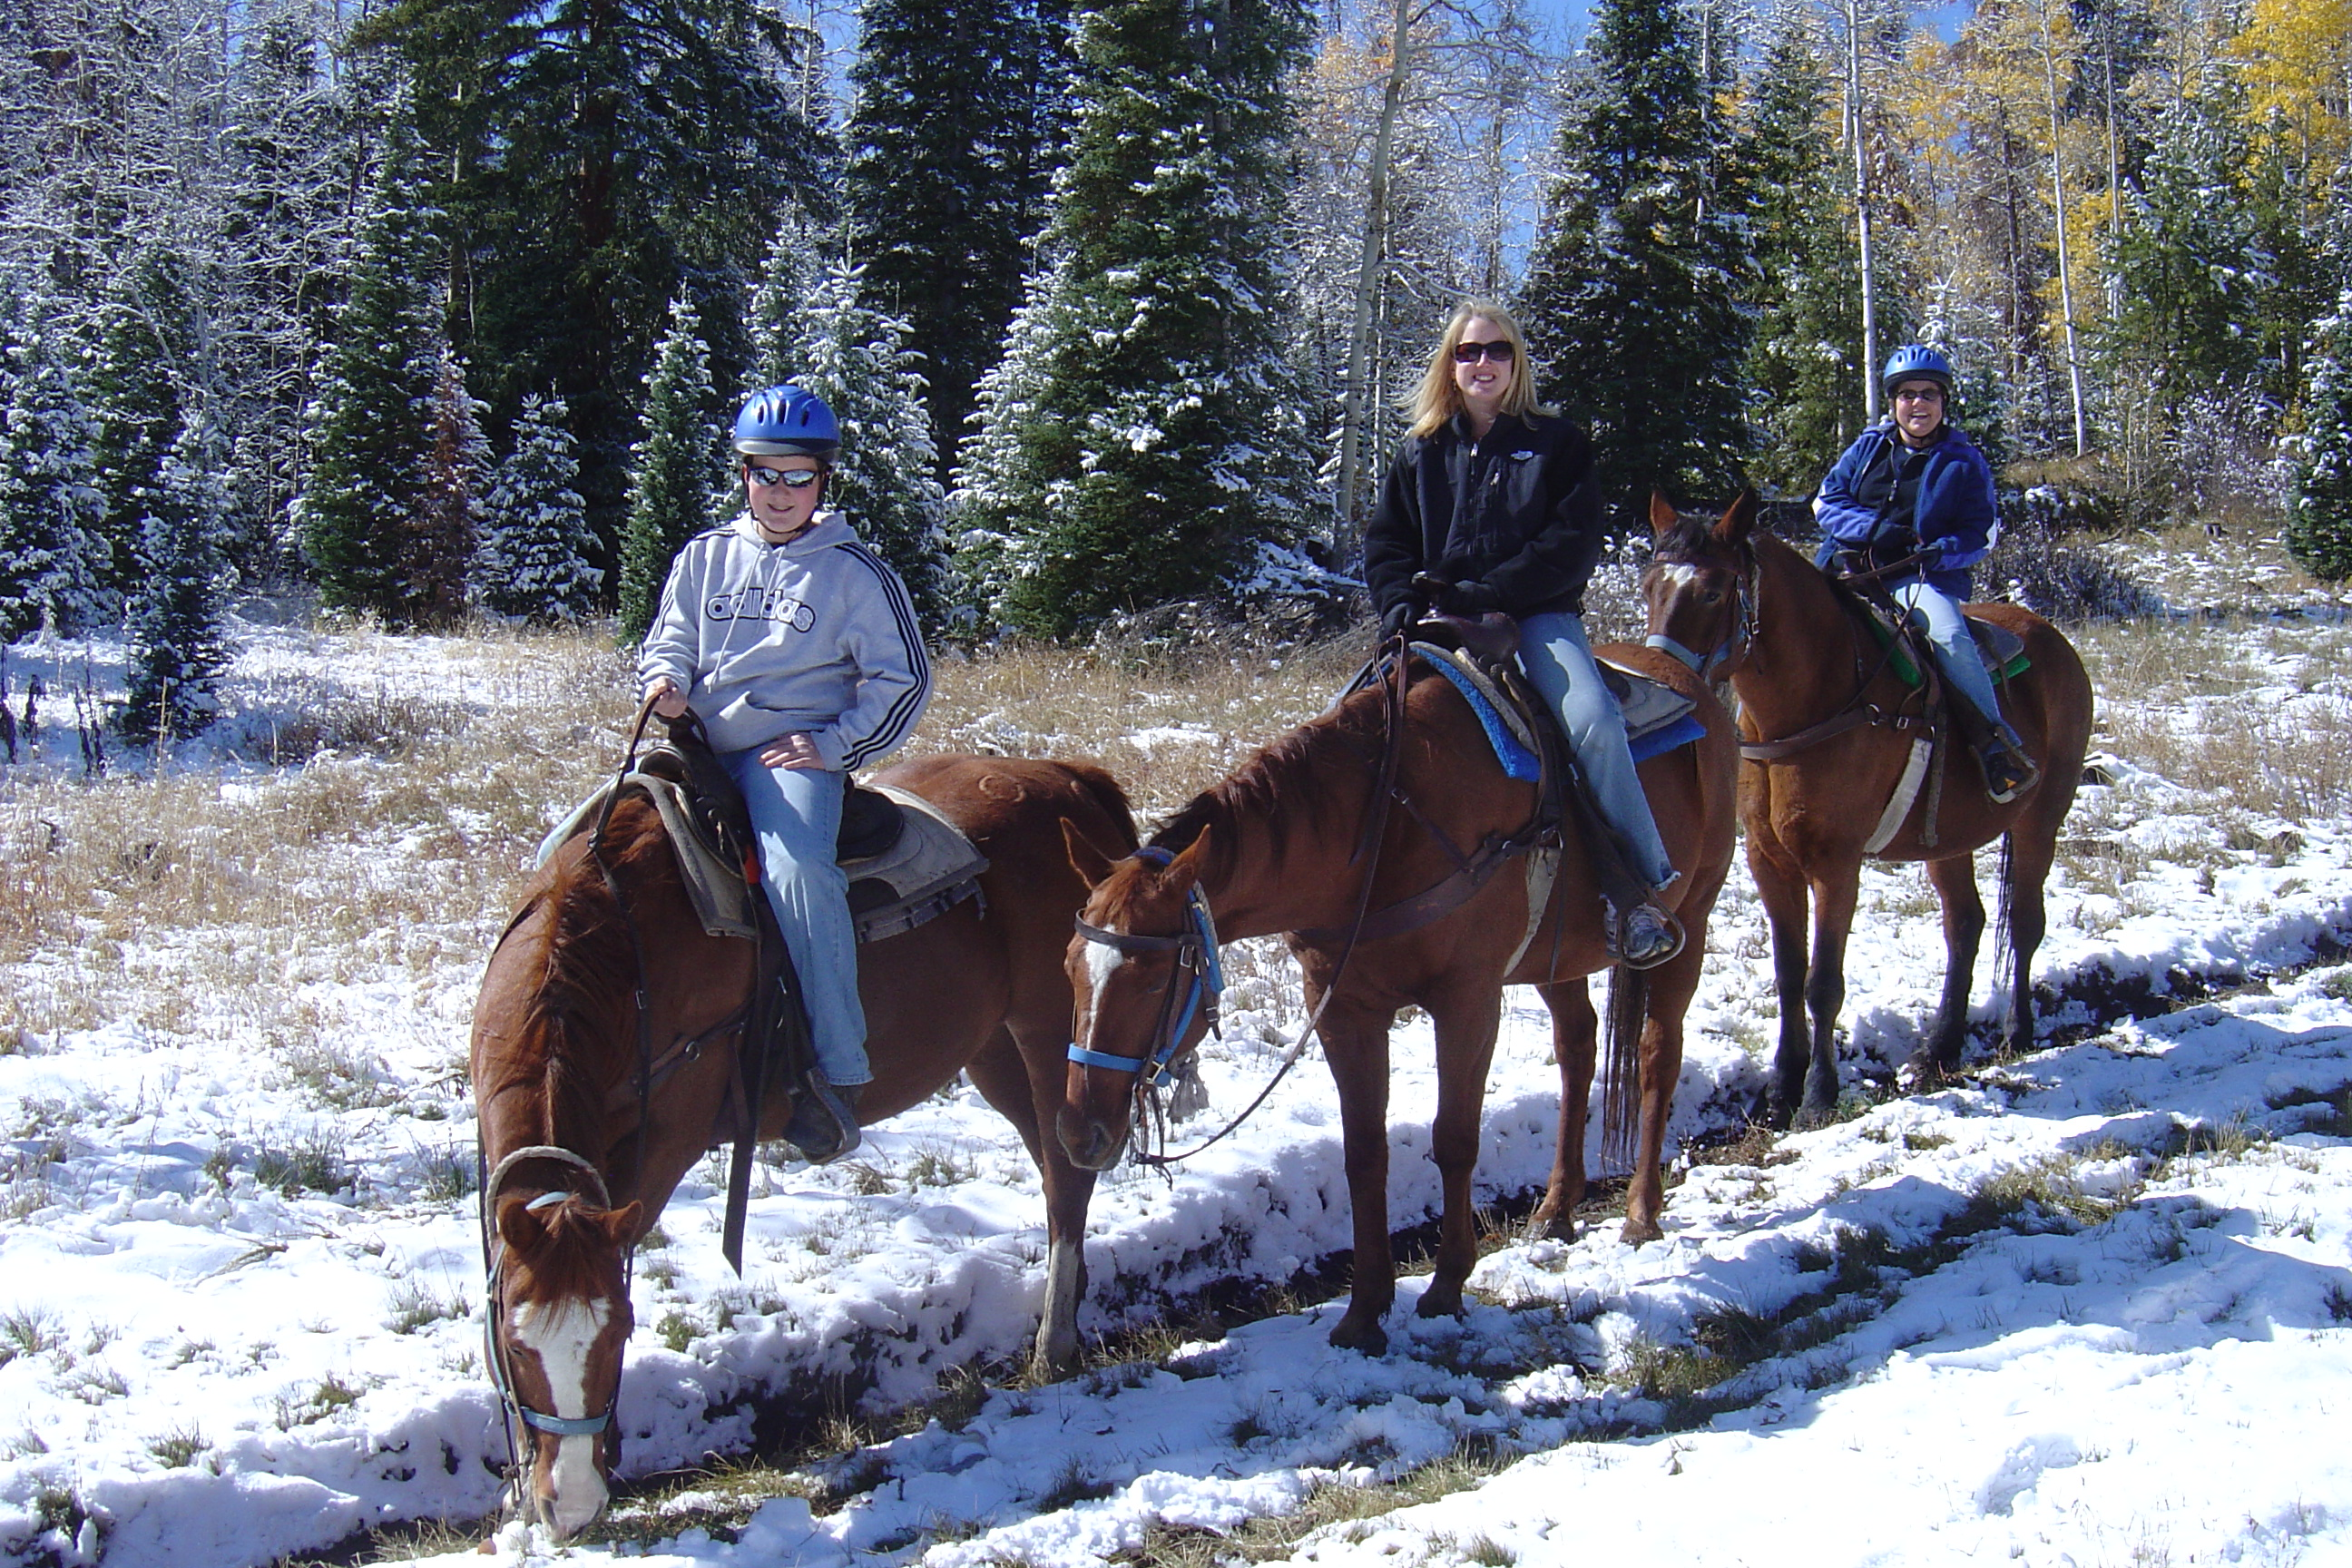 Matthew, me and Beth on our faithful steeds